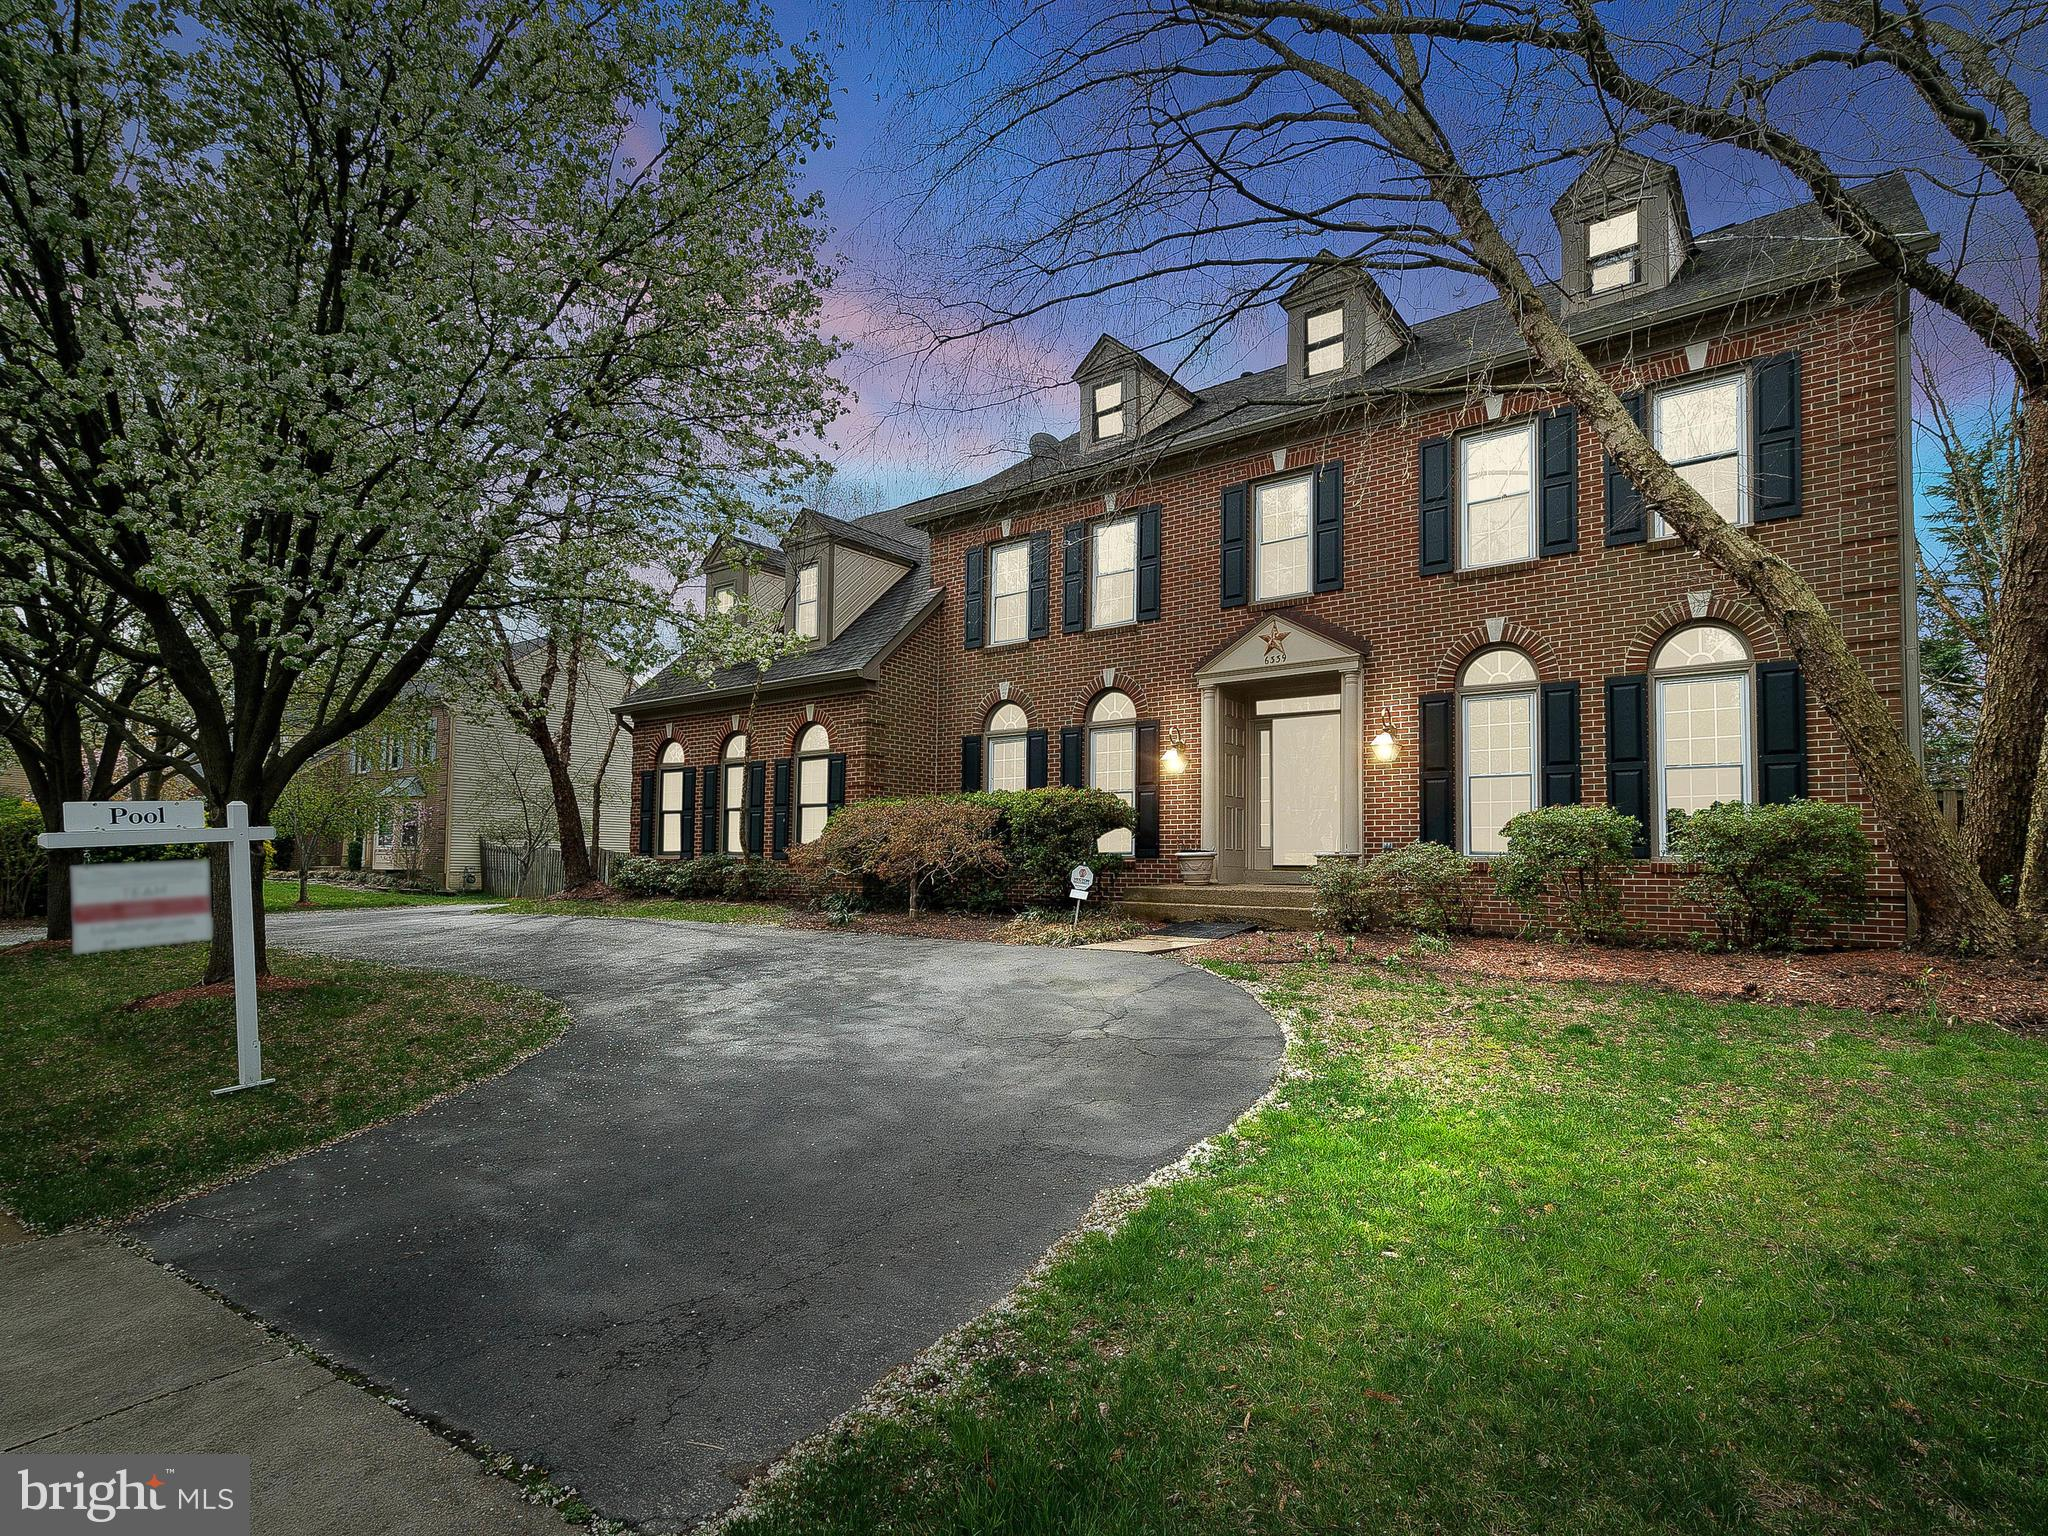 Welcome to the Durham, a rare find in the beautiful CRESTLEIGH neighborhood. This 4 level Home is zoned for the top-rated school district in Alexandria. Just 2 mins from the Metro and commuter routes into downtown D.C.  This elegant home is oozing with appeal. Guests are greeted to a spacious circular driveway. Ample parking in the driveway or 2 car garage. Entertaining just got exciting! Relax by the heated jacuzzi or swimming pool designed by Anthony & Sylvan. The main level features a sunfilled Great room with oversized windows. Cathedrals ceilings by the fireplace. Kitchen features stainless steel appliances, granite counters , Island .With over 5000 Sqft-Its perfect for Multi-family living. The upper 2 levels boast  5 large bedrooms, 6 bedrooms (NTC)  in the lower floor w-Full bath and walkout access. Master-bdrm w/high ceiling, laundry chute,  multiple en-suite baths. Features an extra large soaking tub and shower and walk-in closets.  The basement is fully finished with Bar. Rec rooms perfect for game room and Movies  Energy efficient upgrades : Siding with insulation wrap, Triple pane windows, 2 zoned HVAC, 160 gal Water heater, irrigation system newer  Gutter and Roof. Just  5-minute drive to the Wegmans Hilltop, Springfield TownCenter, Topgolf, INOVA healthplex , Military bases -Ft Belvoir and US Coast Guard Tiscom and Metro Park.